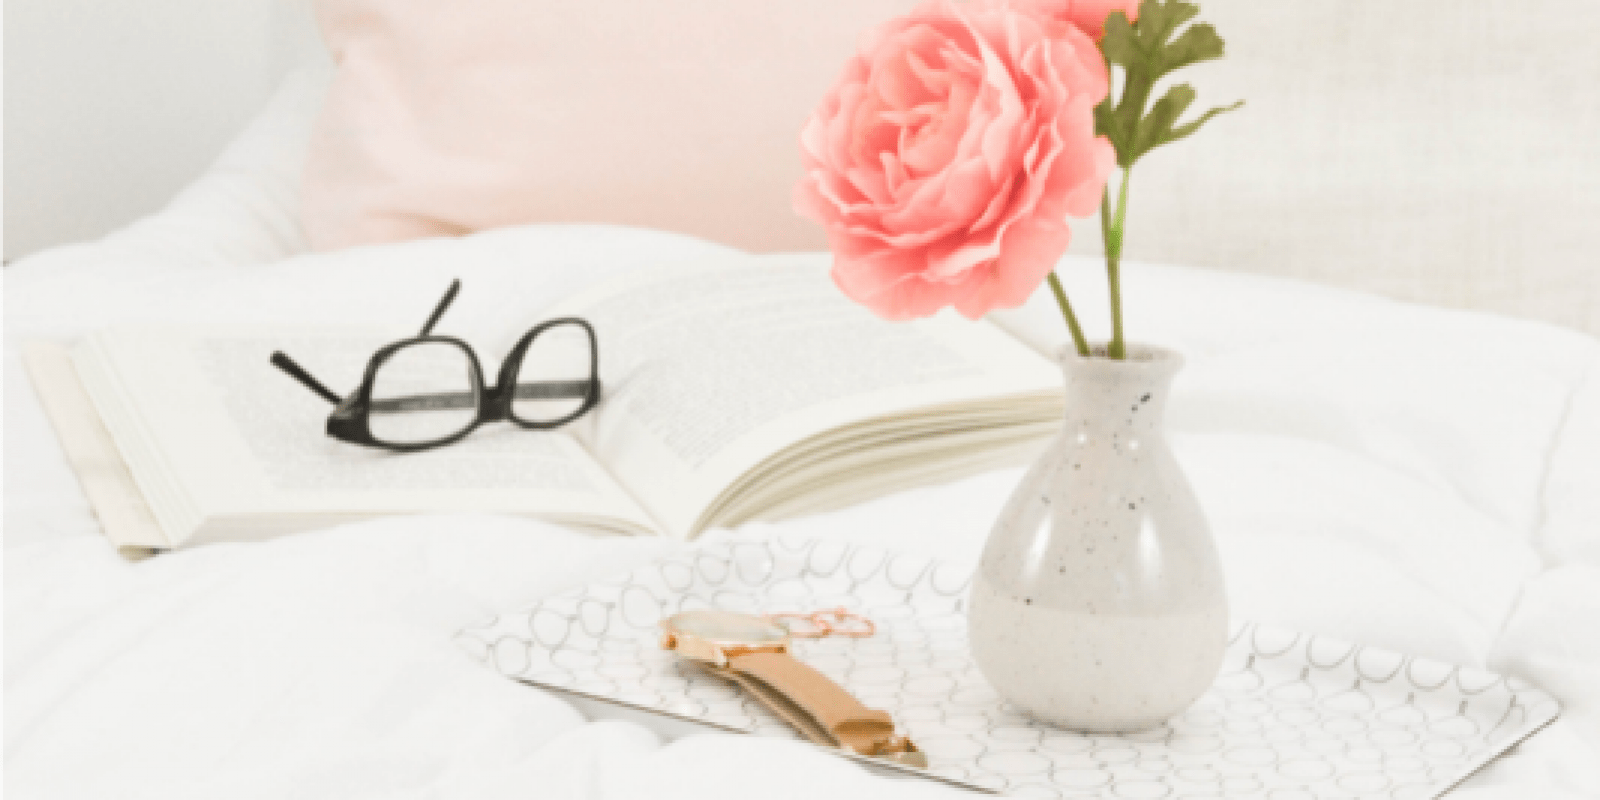 A small bunch of pink flowers and a pair of glasses resting on a book